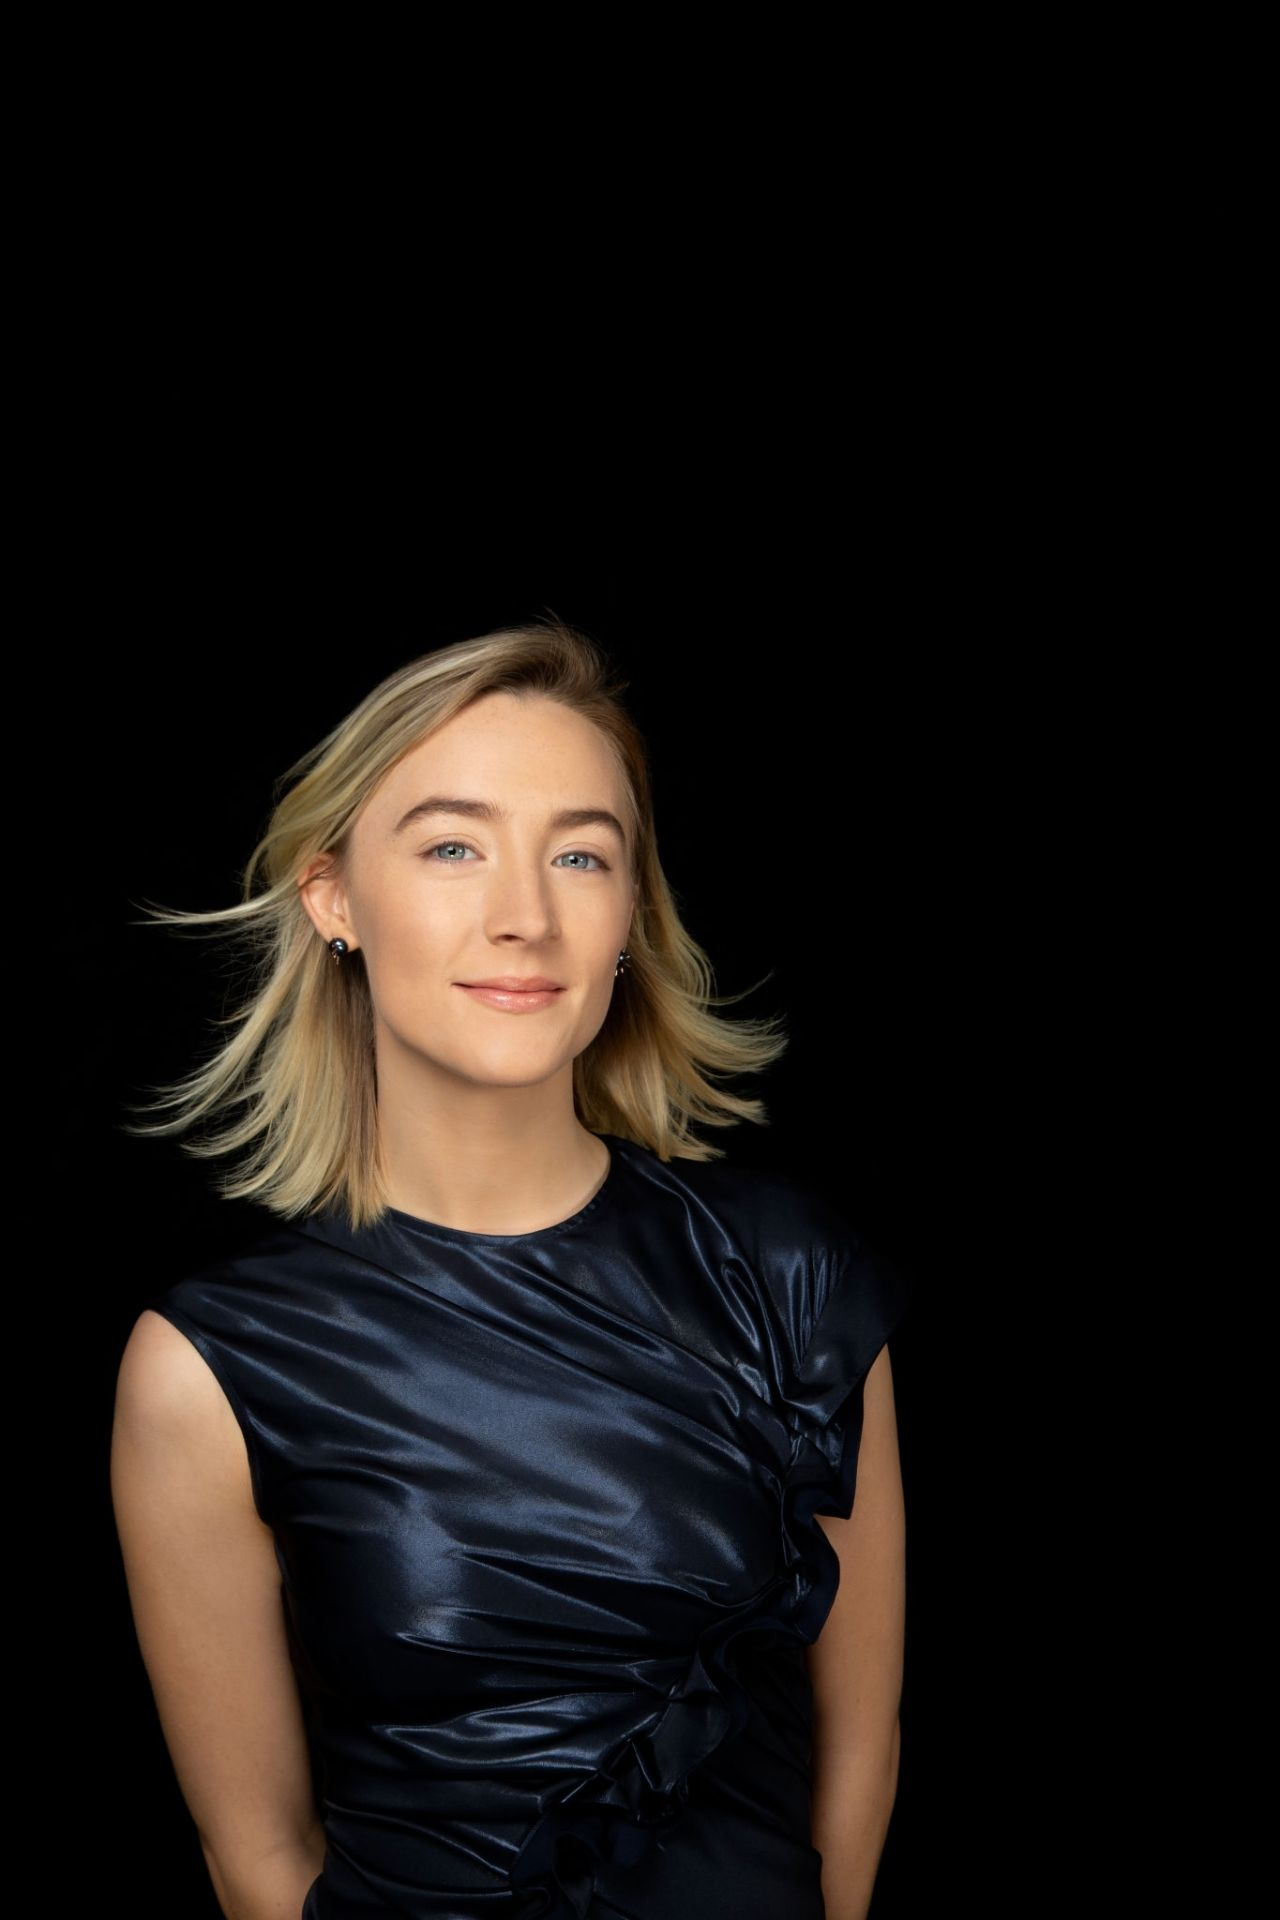 saoirse-ronan-photoshoot-for-la-times-actresses-roundtable-december-2018-0.jpg